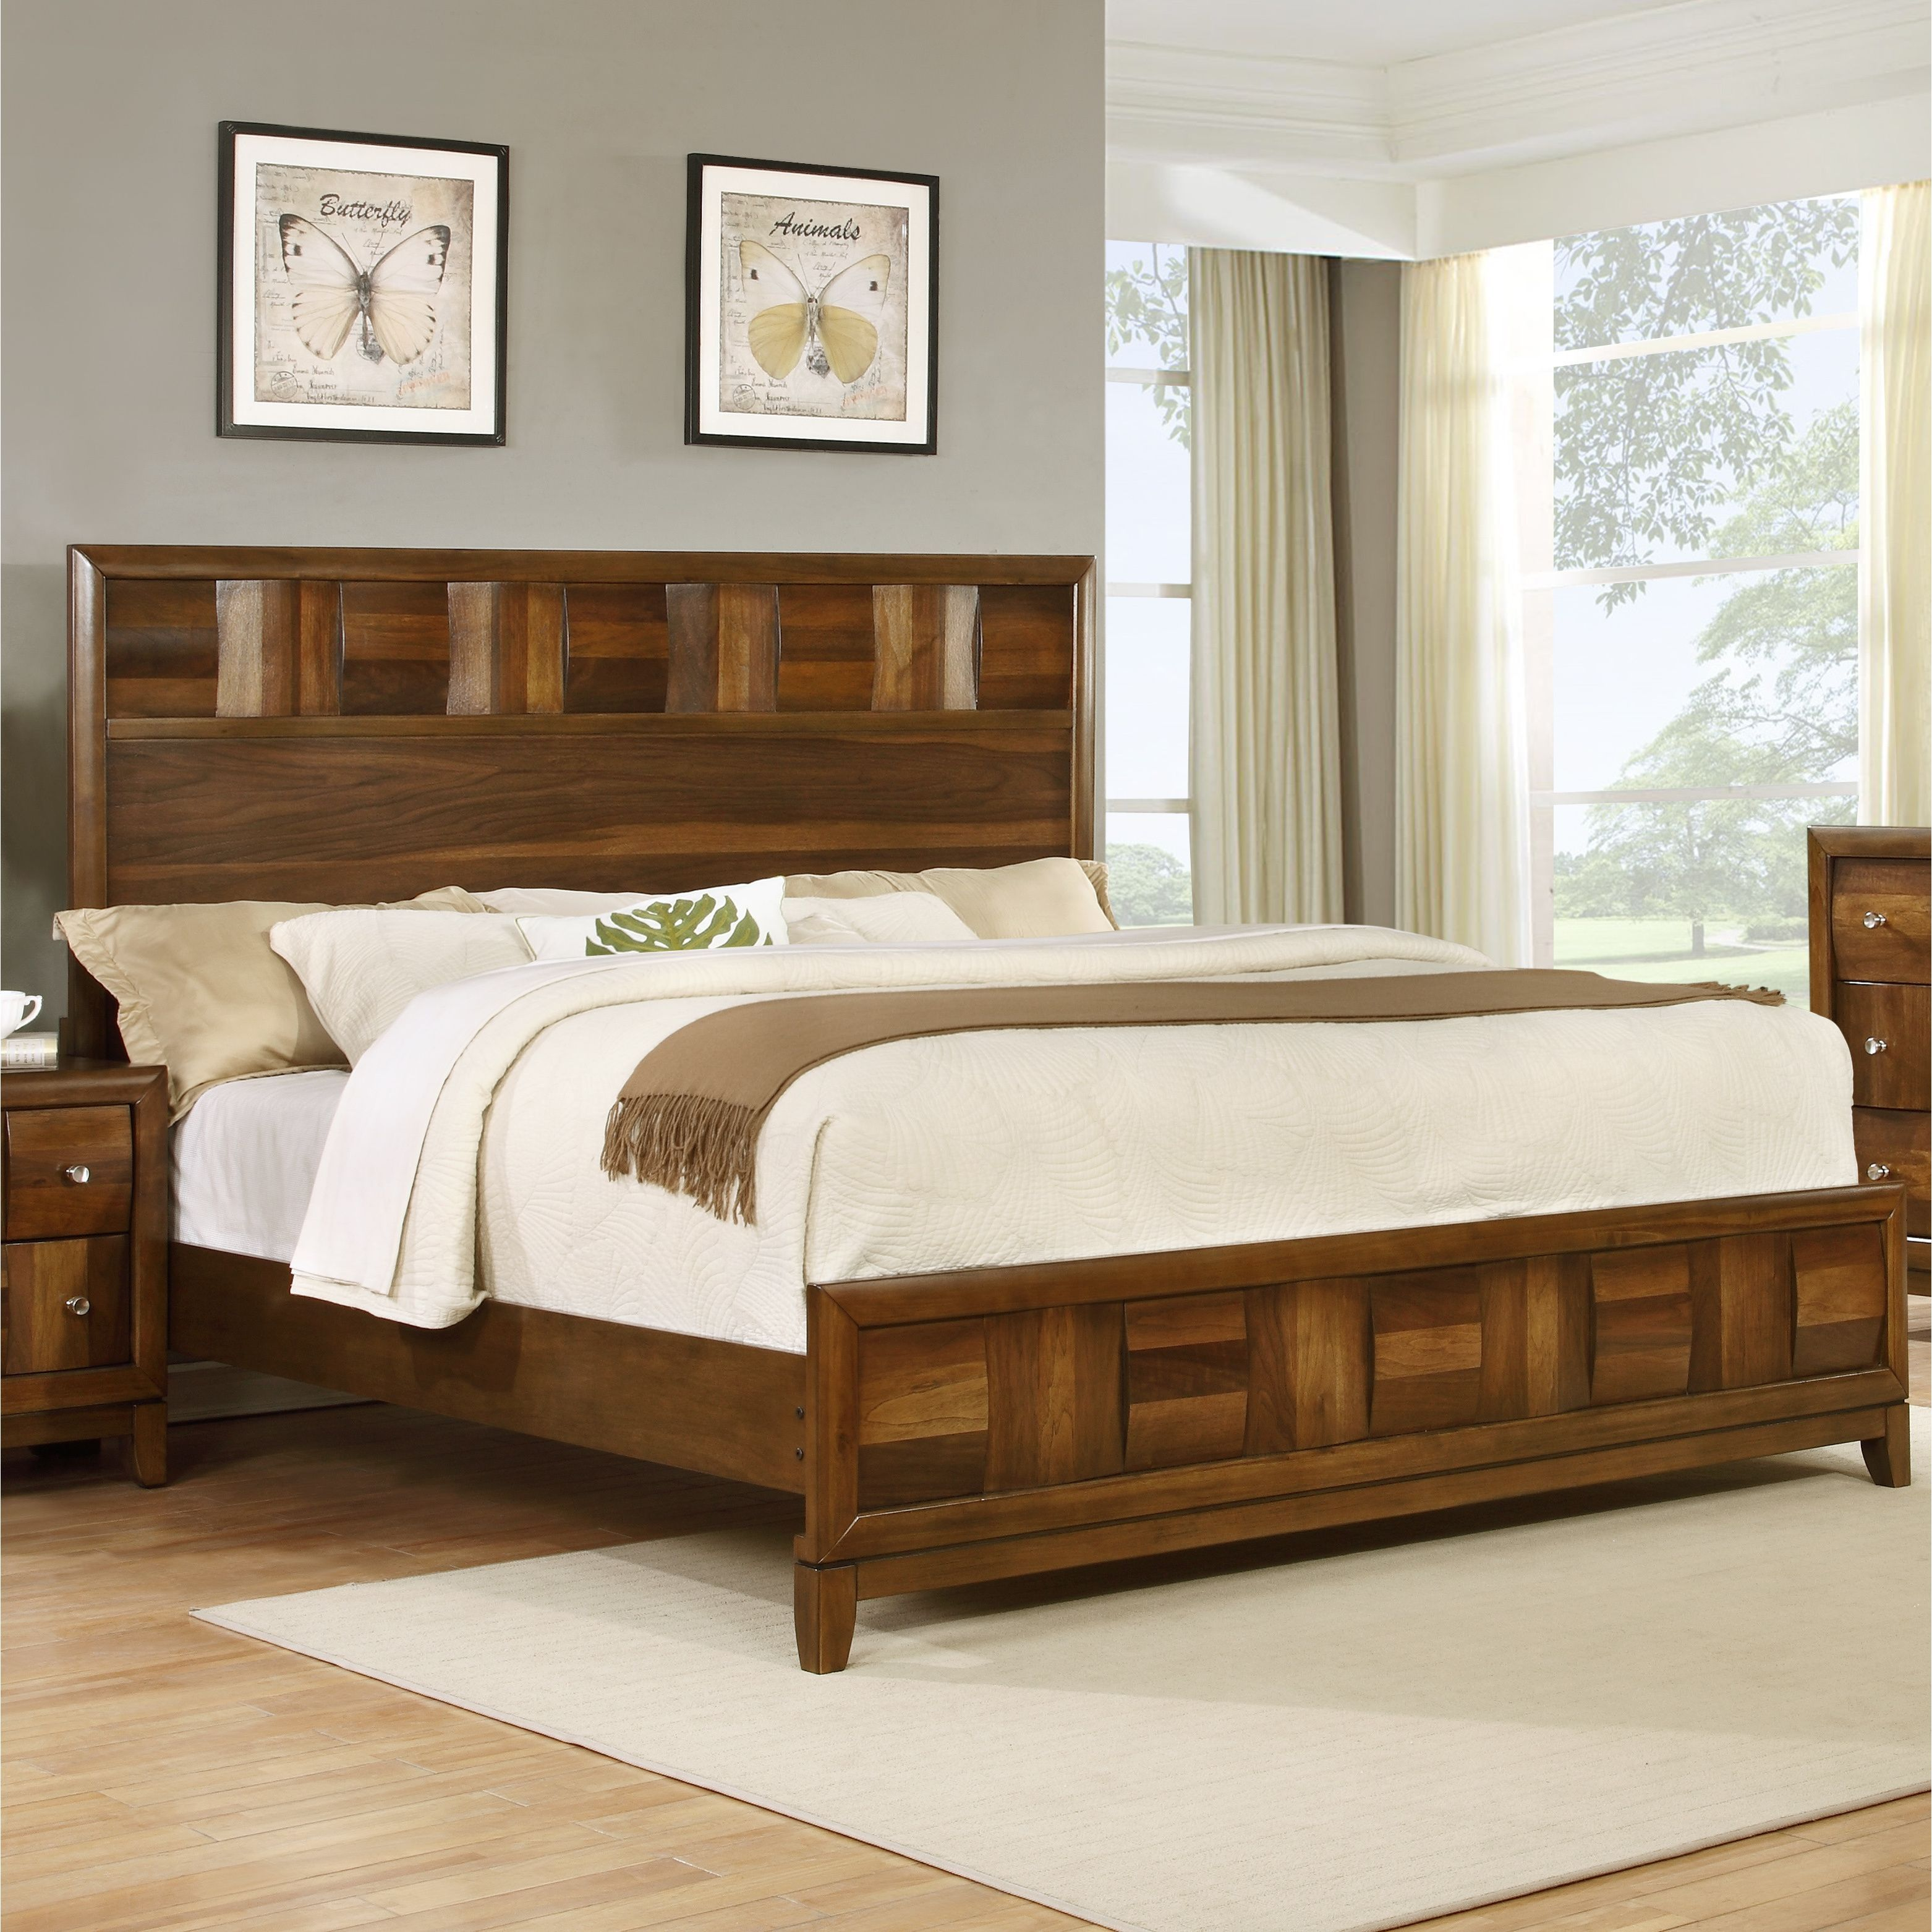 Calais Walnut Wood King Size Panel Bed (King), Brown